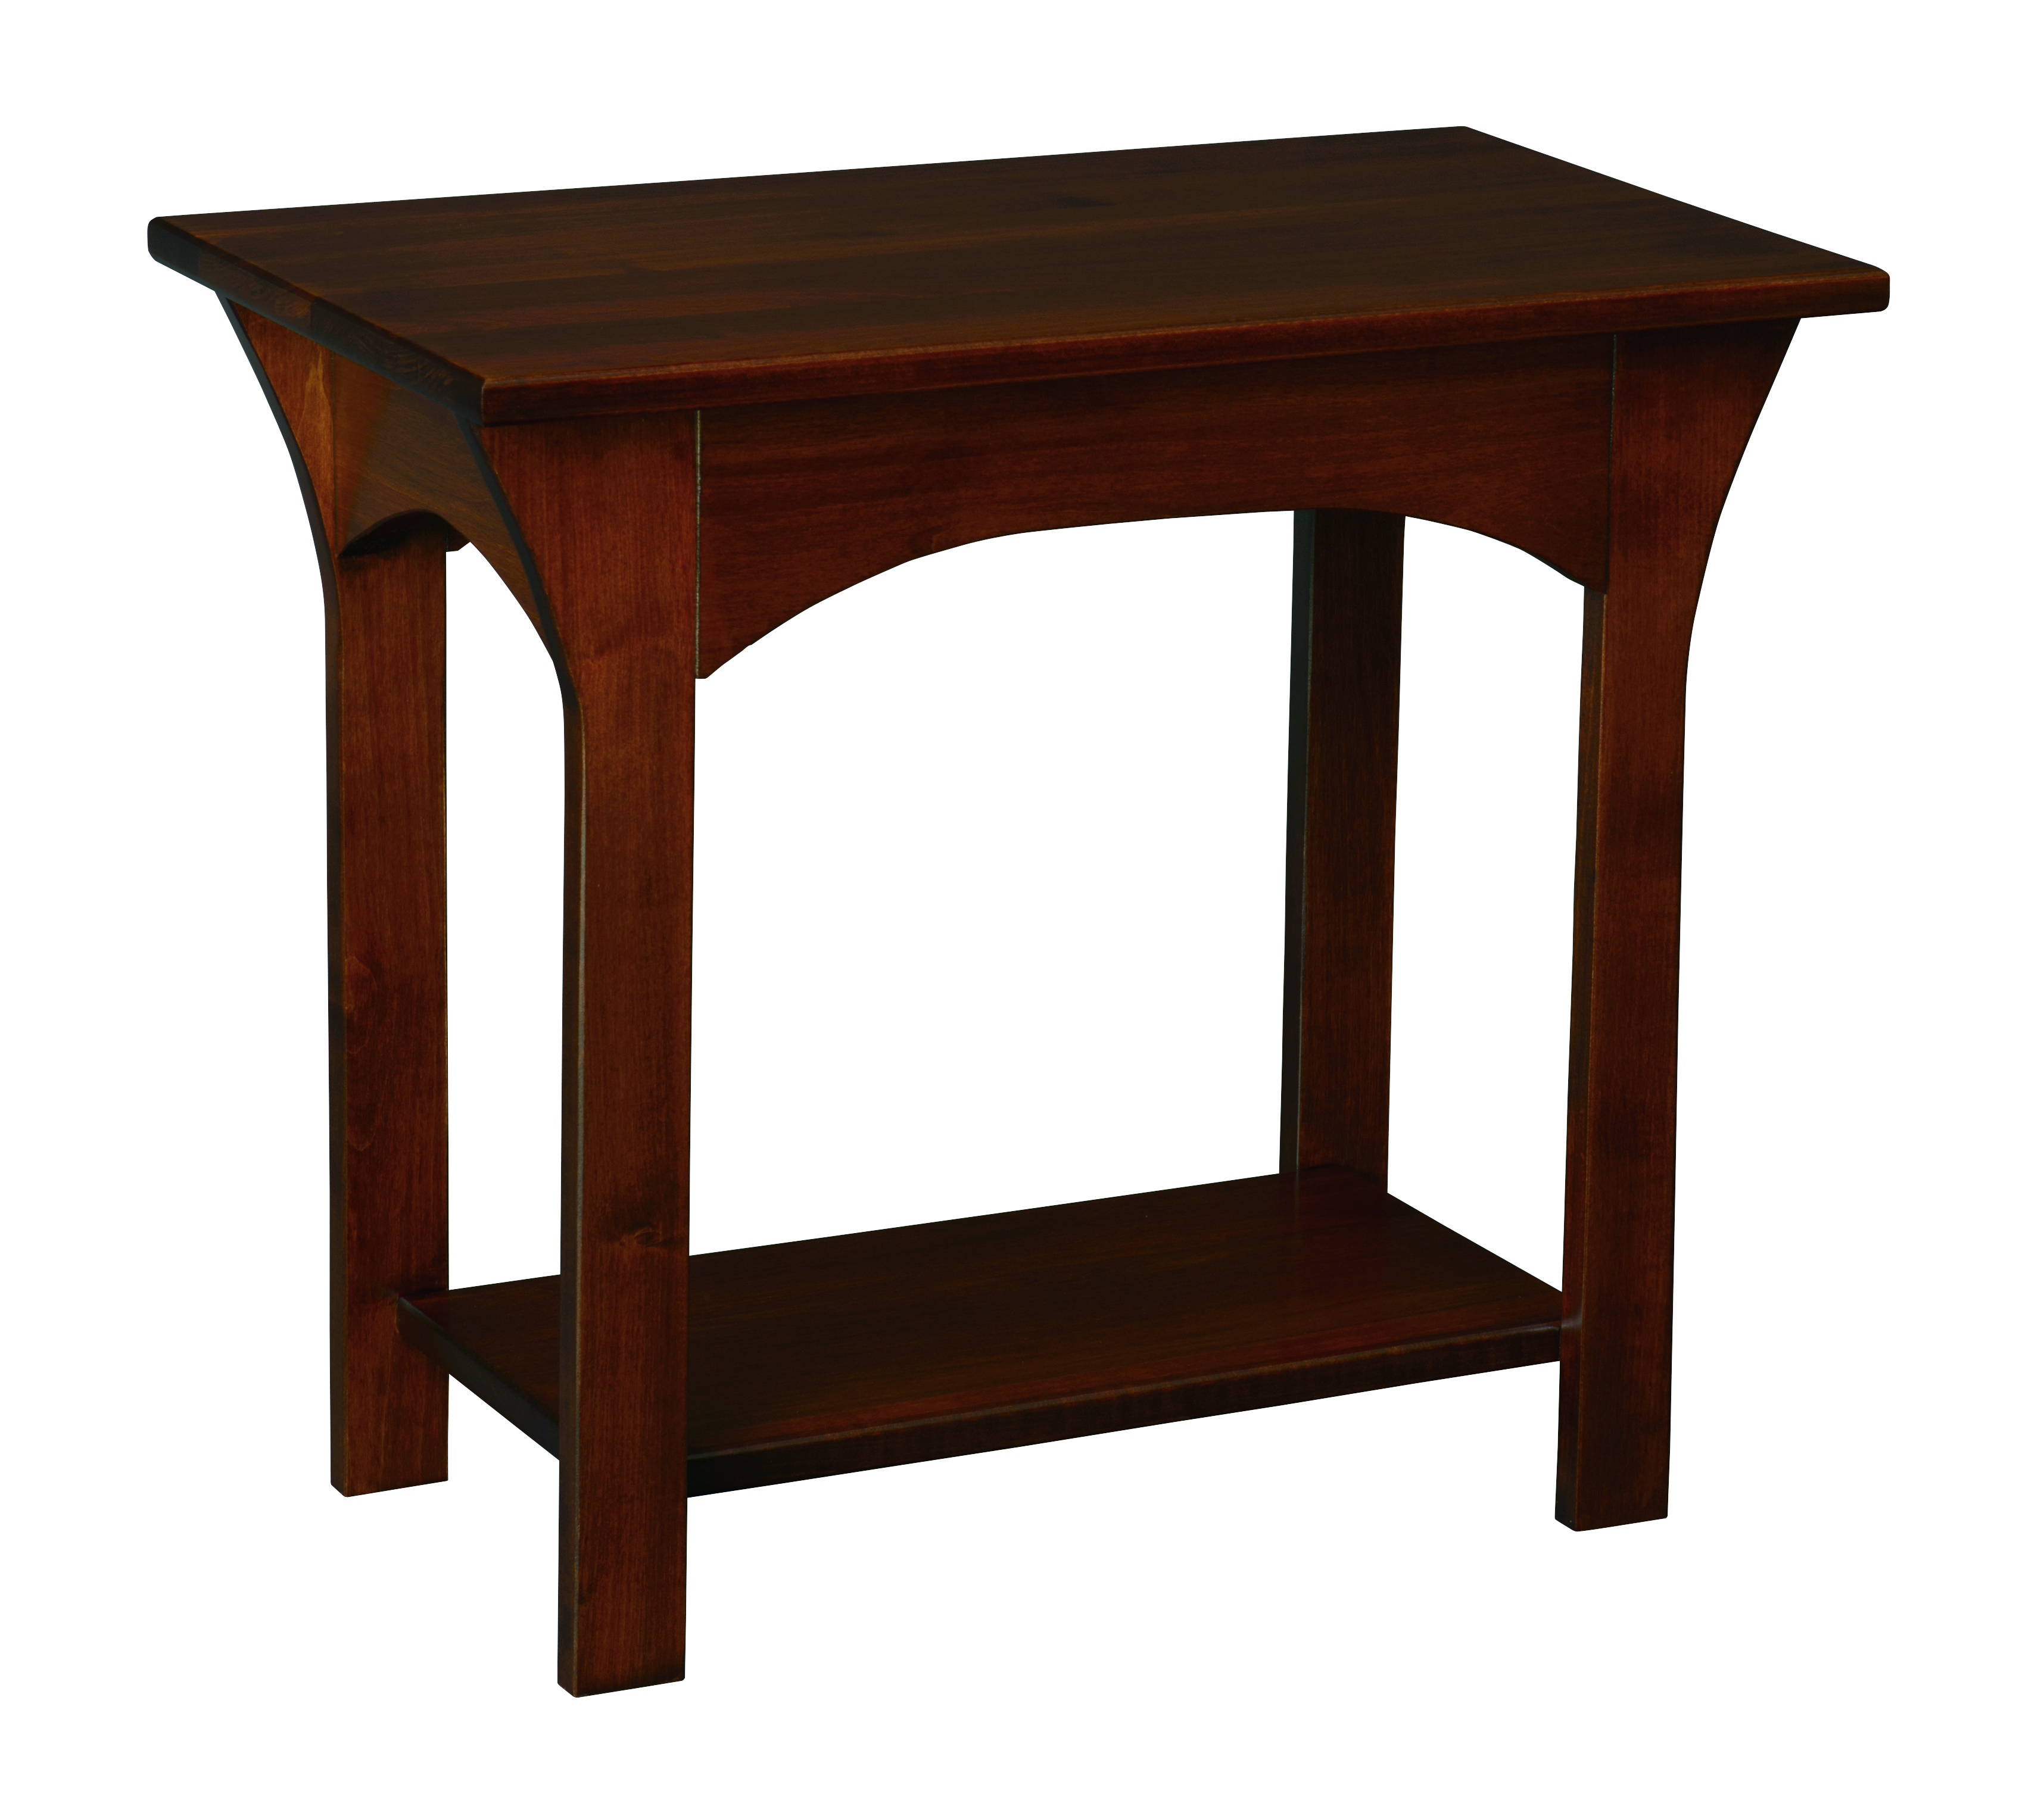 Monarch Chairside Table Peaceful Valley Amish Furniture